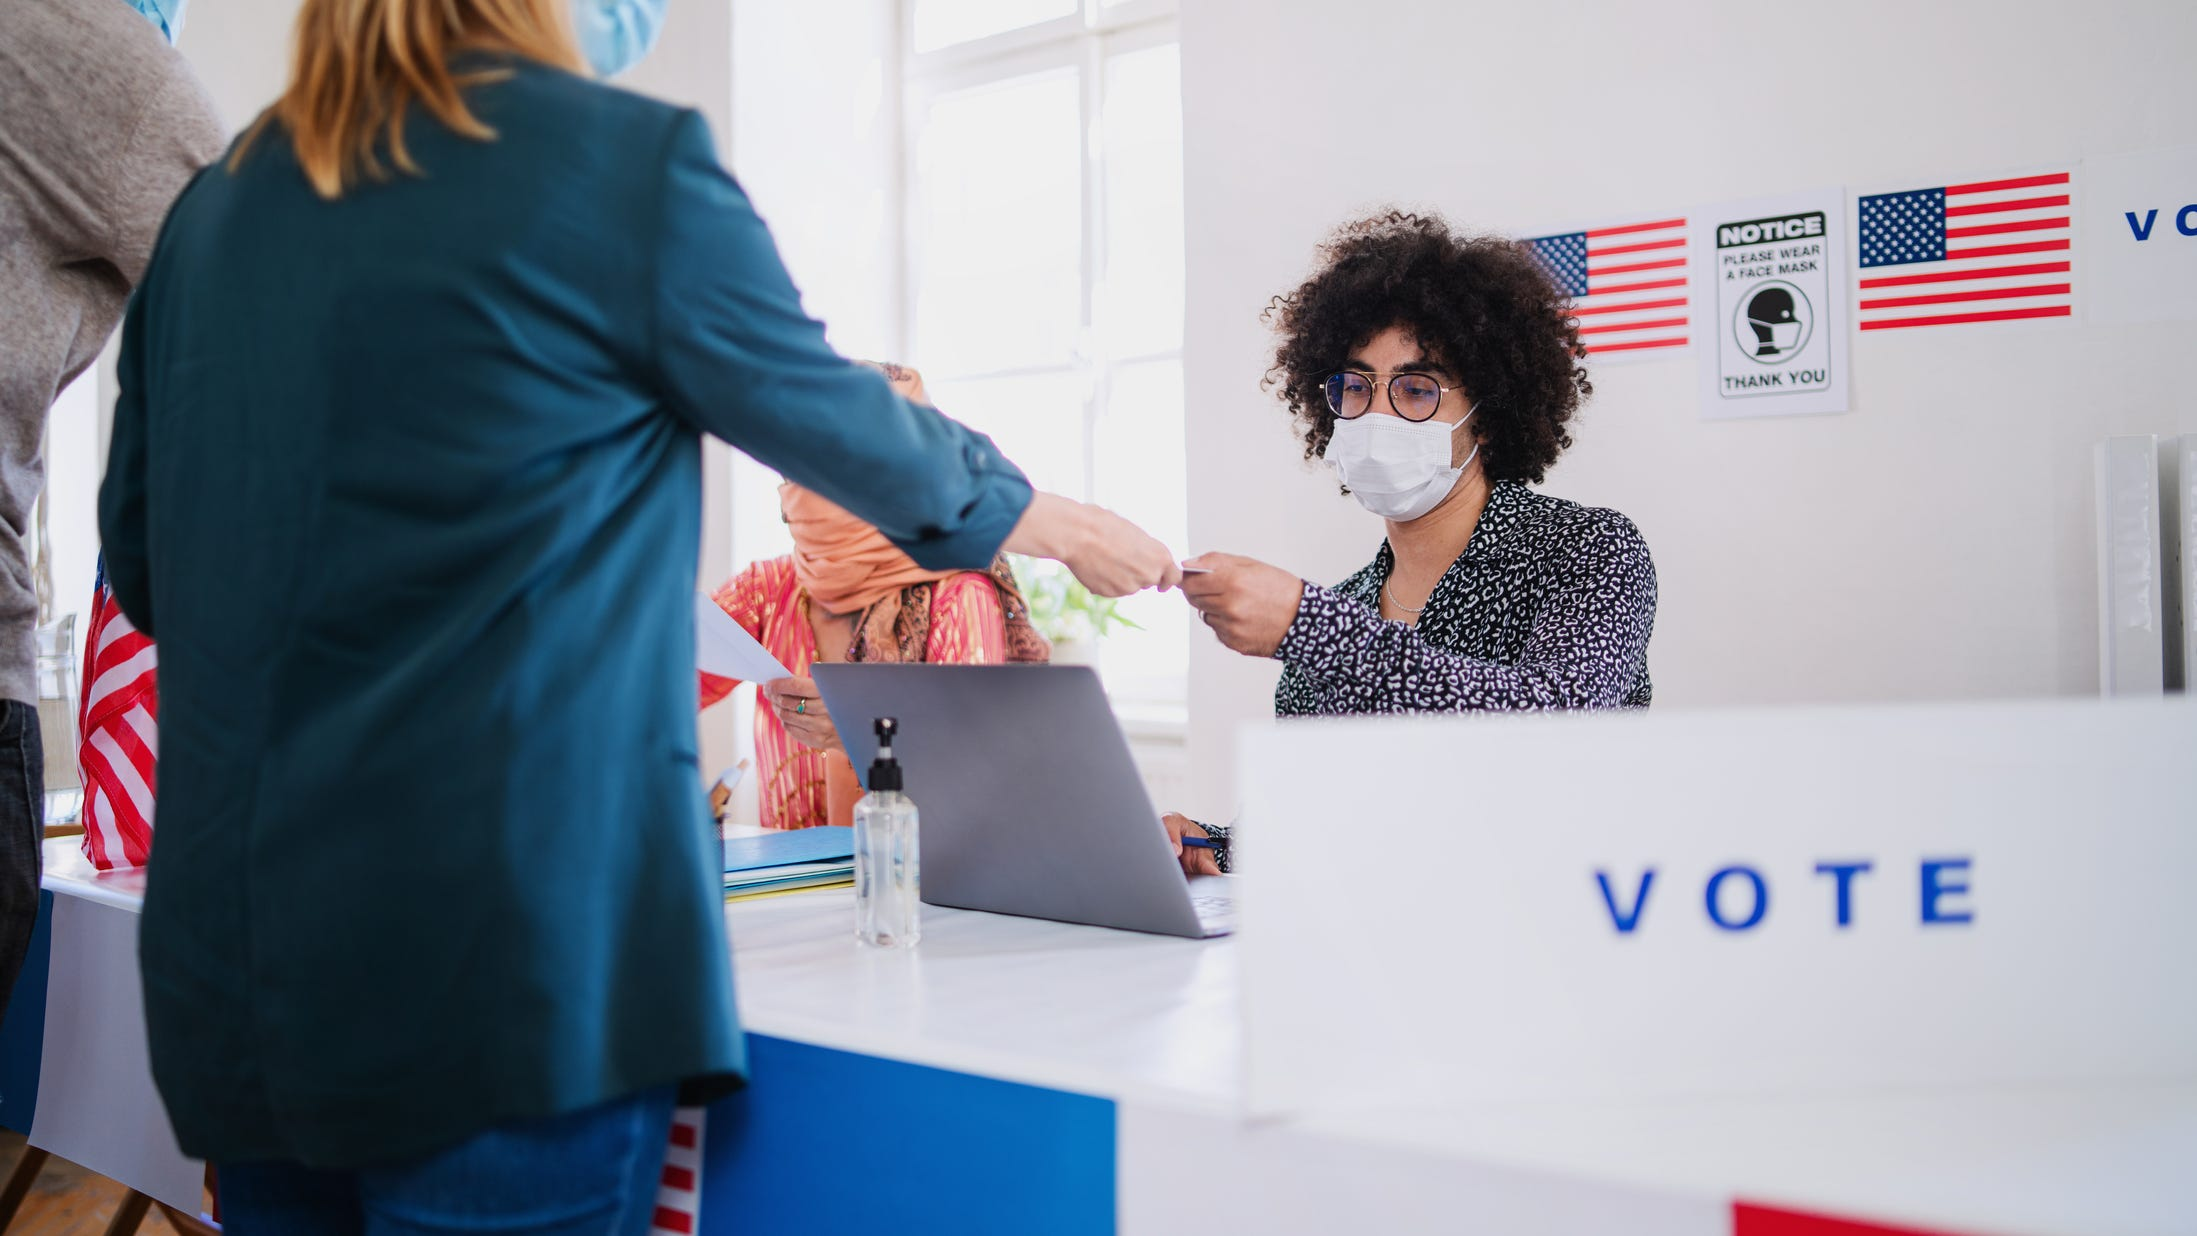 2020 election: How to find your polling location